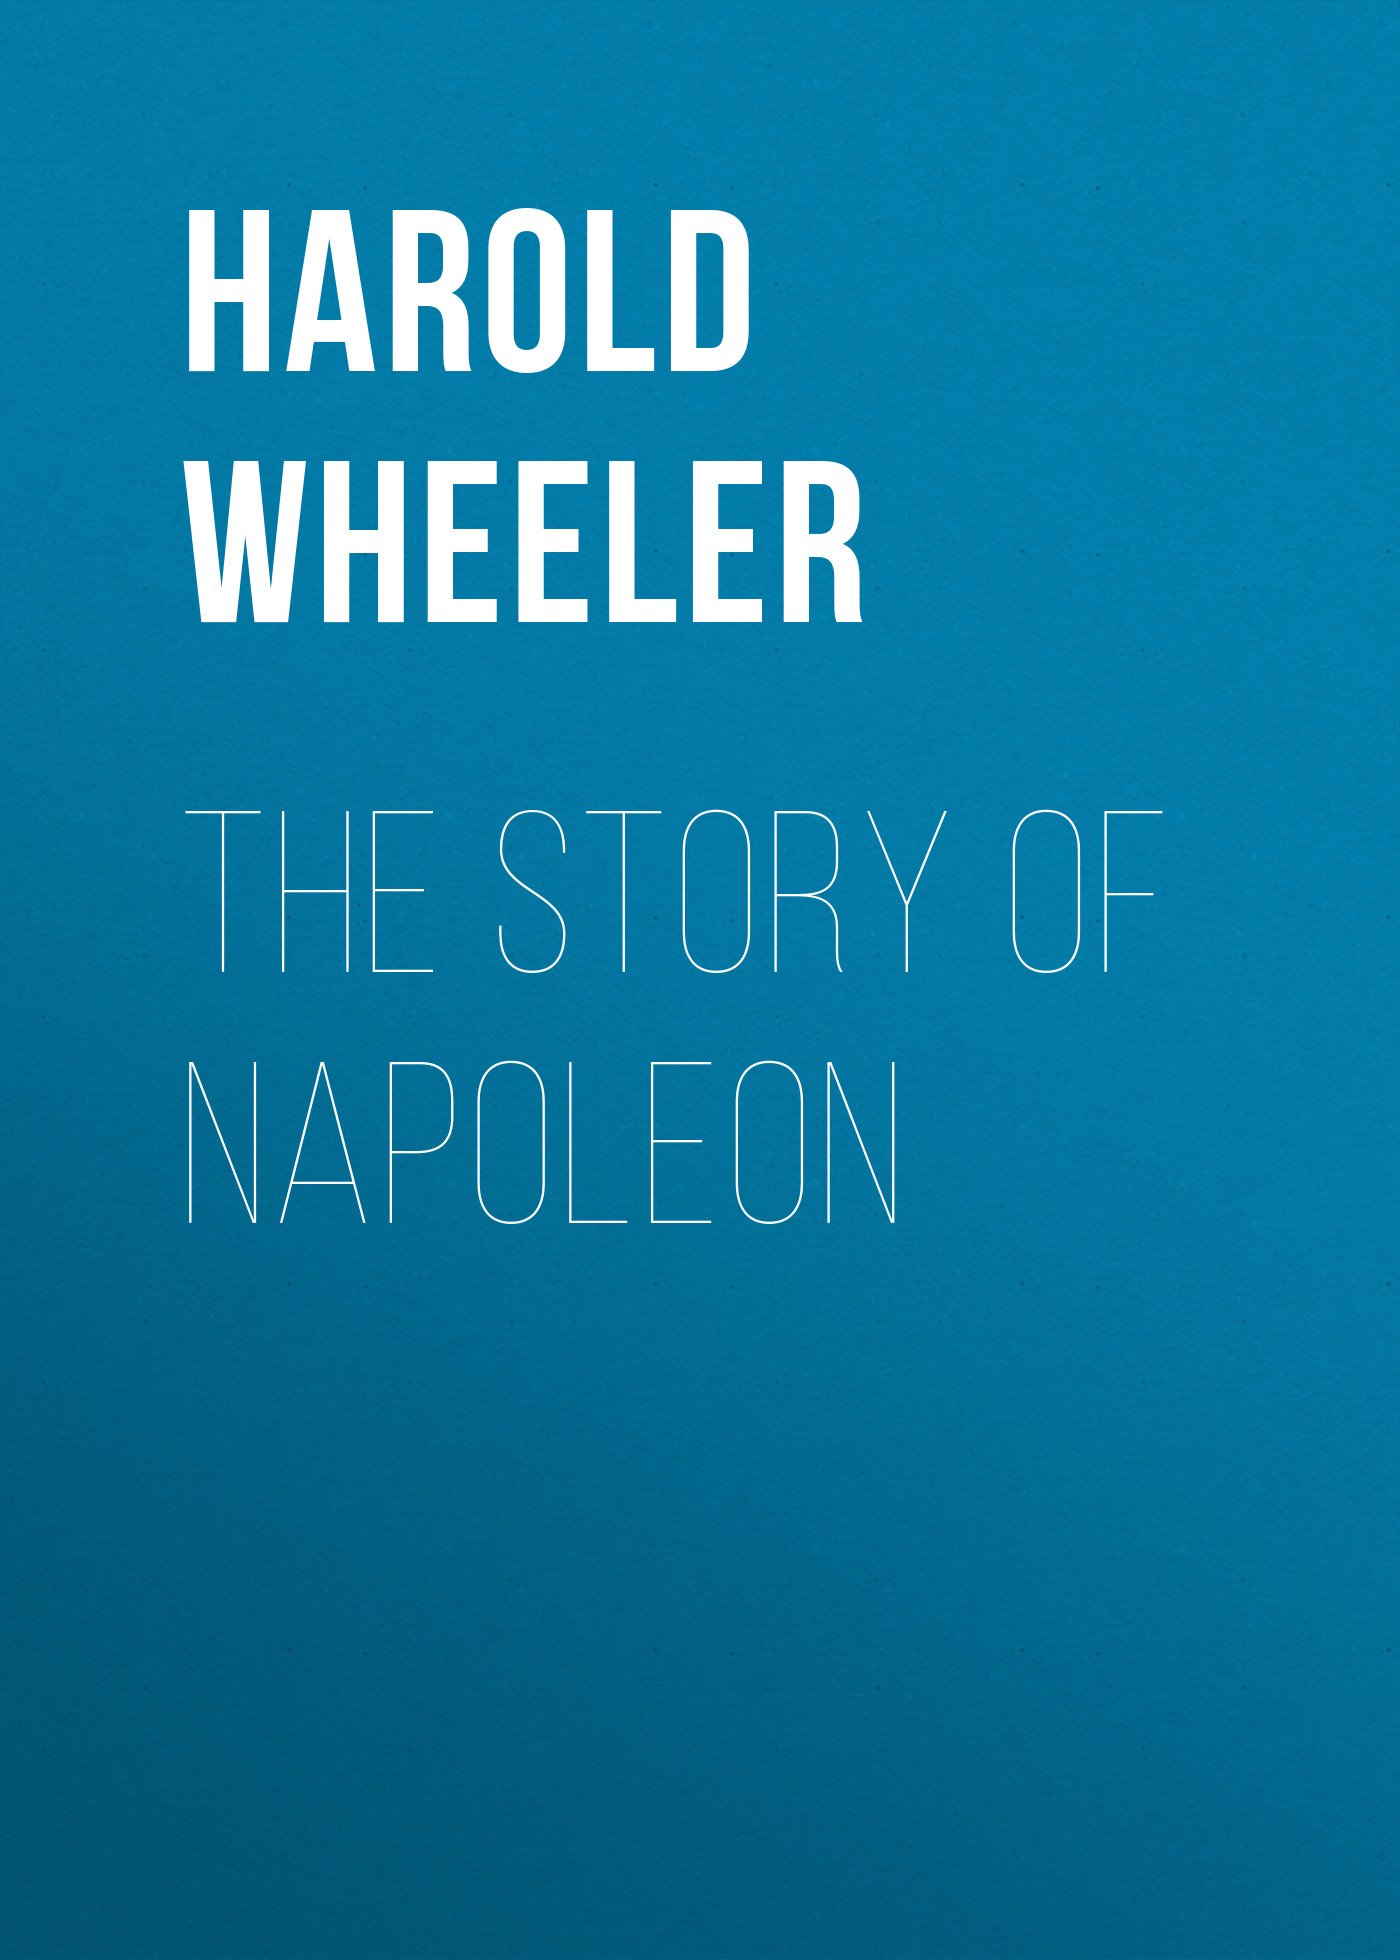 Harold Wheeler The Story of Napoleon harold wheeler the story of napoleon